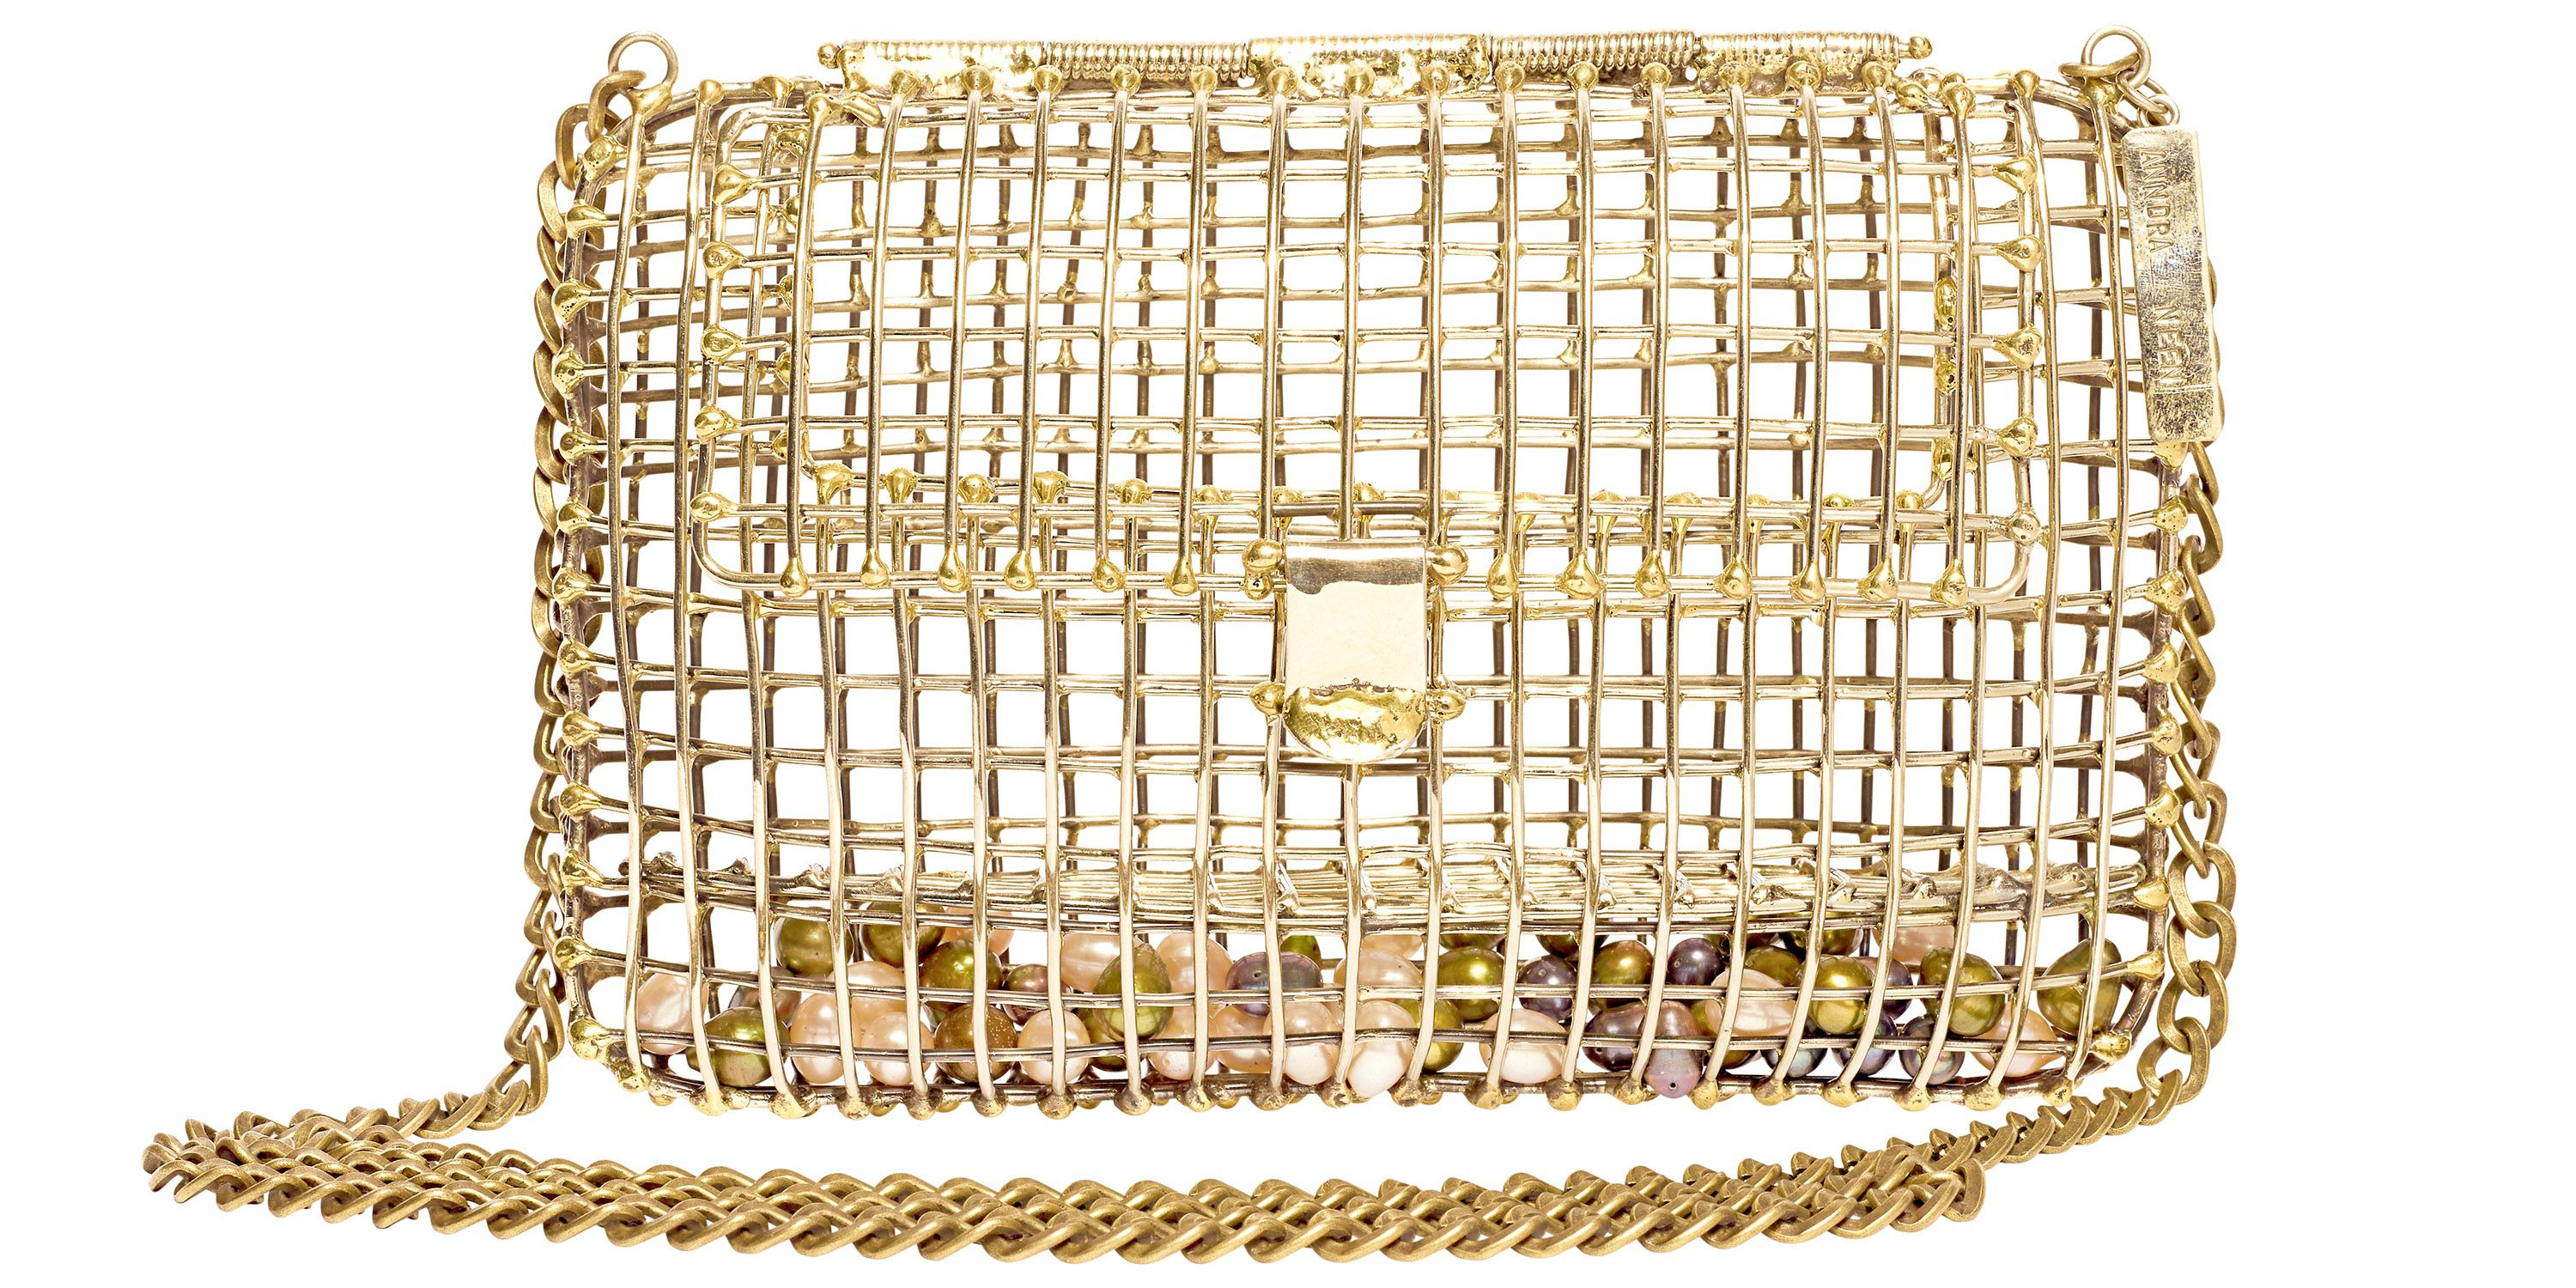 "<p><strong>Handbag:</strong> ""For evening, I love the gold cage bag by Anndra Neen."" </p><p><strong>Anndra Neen </strong>bag, $850, <a href=""https://shop.harpersbazaar.com/designers/a/anndra-neen/pearl-cage-bag.html"" target=""_blank"">shopBAZAAR.com</a>.<br></p>"